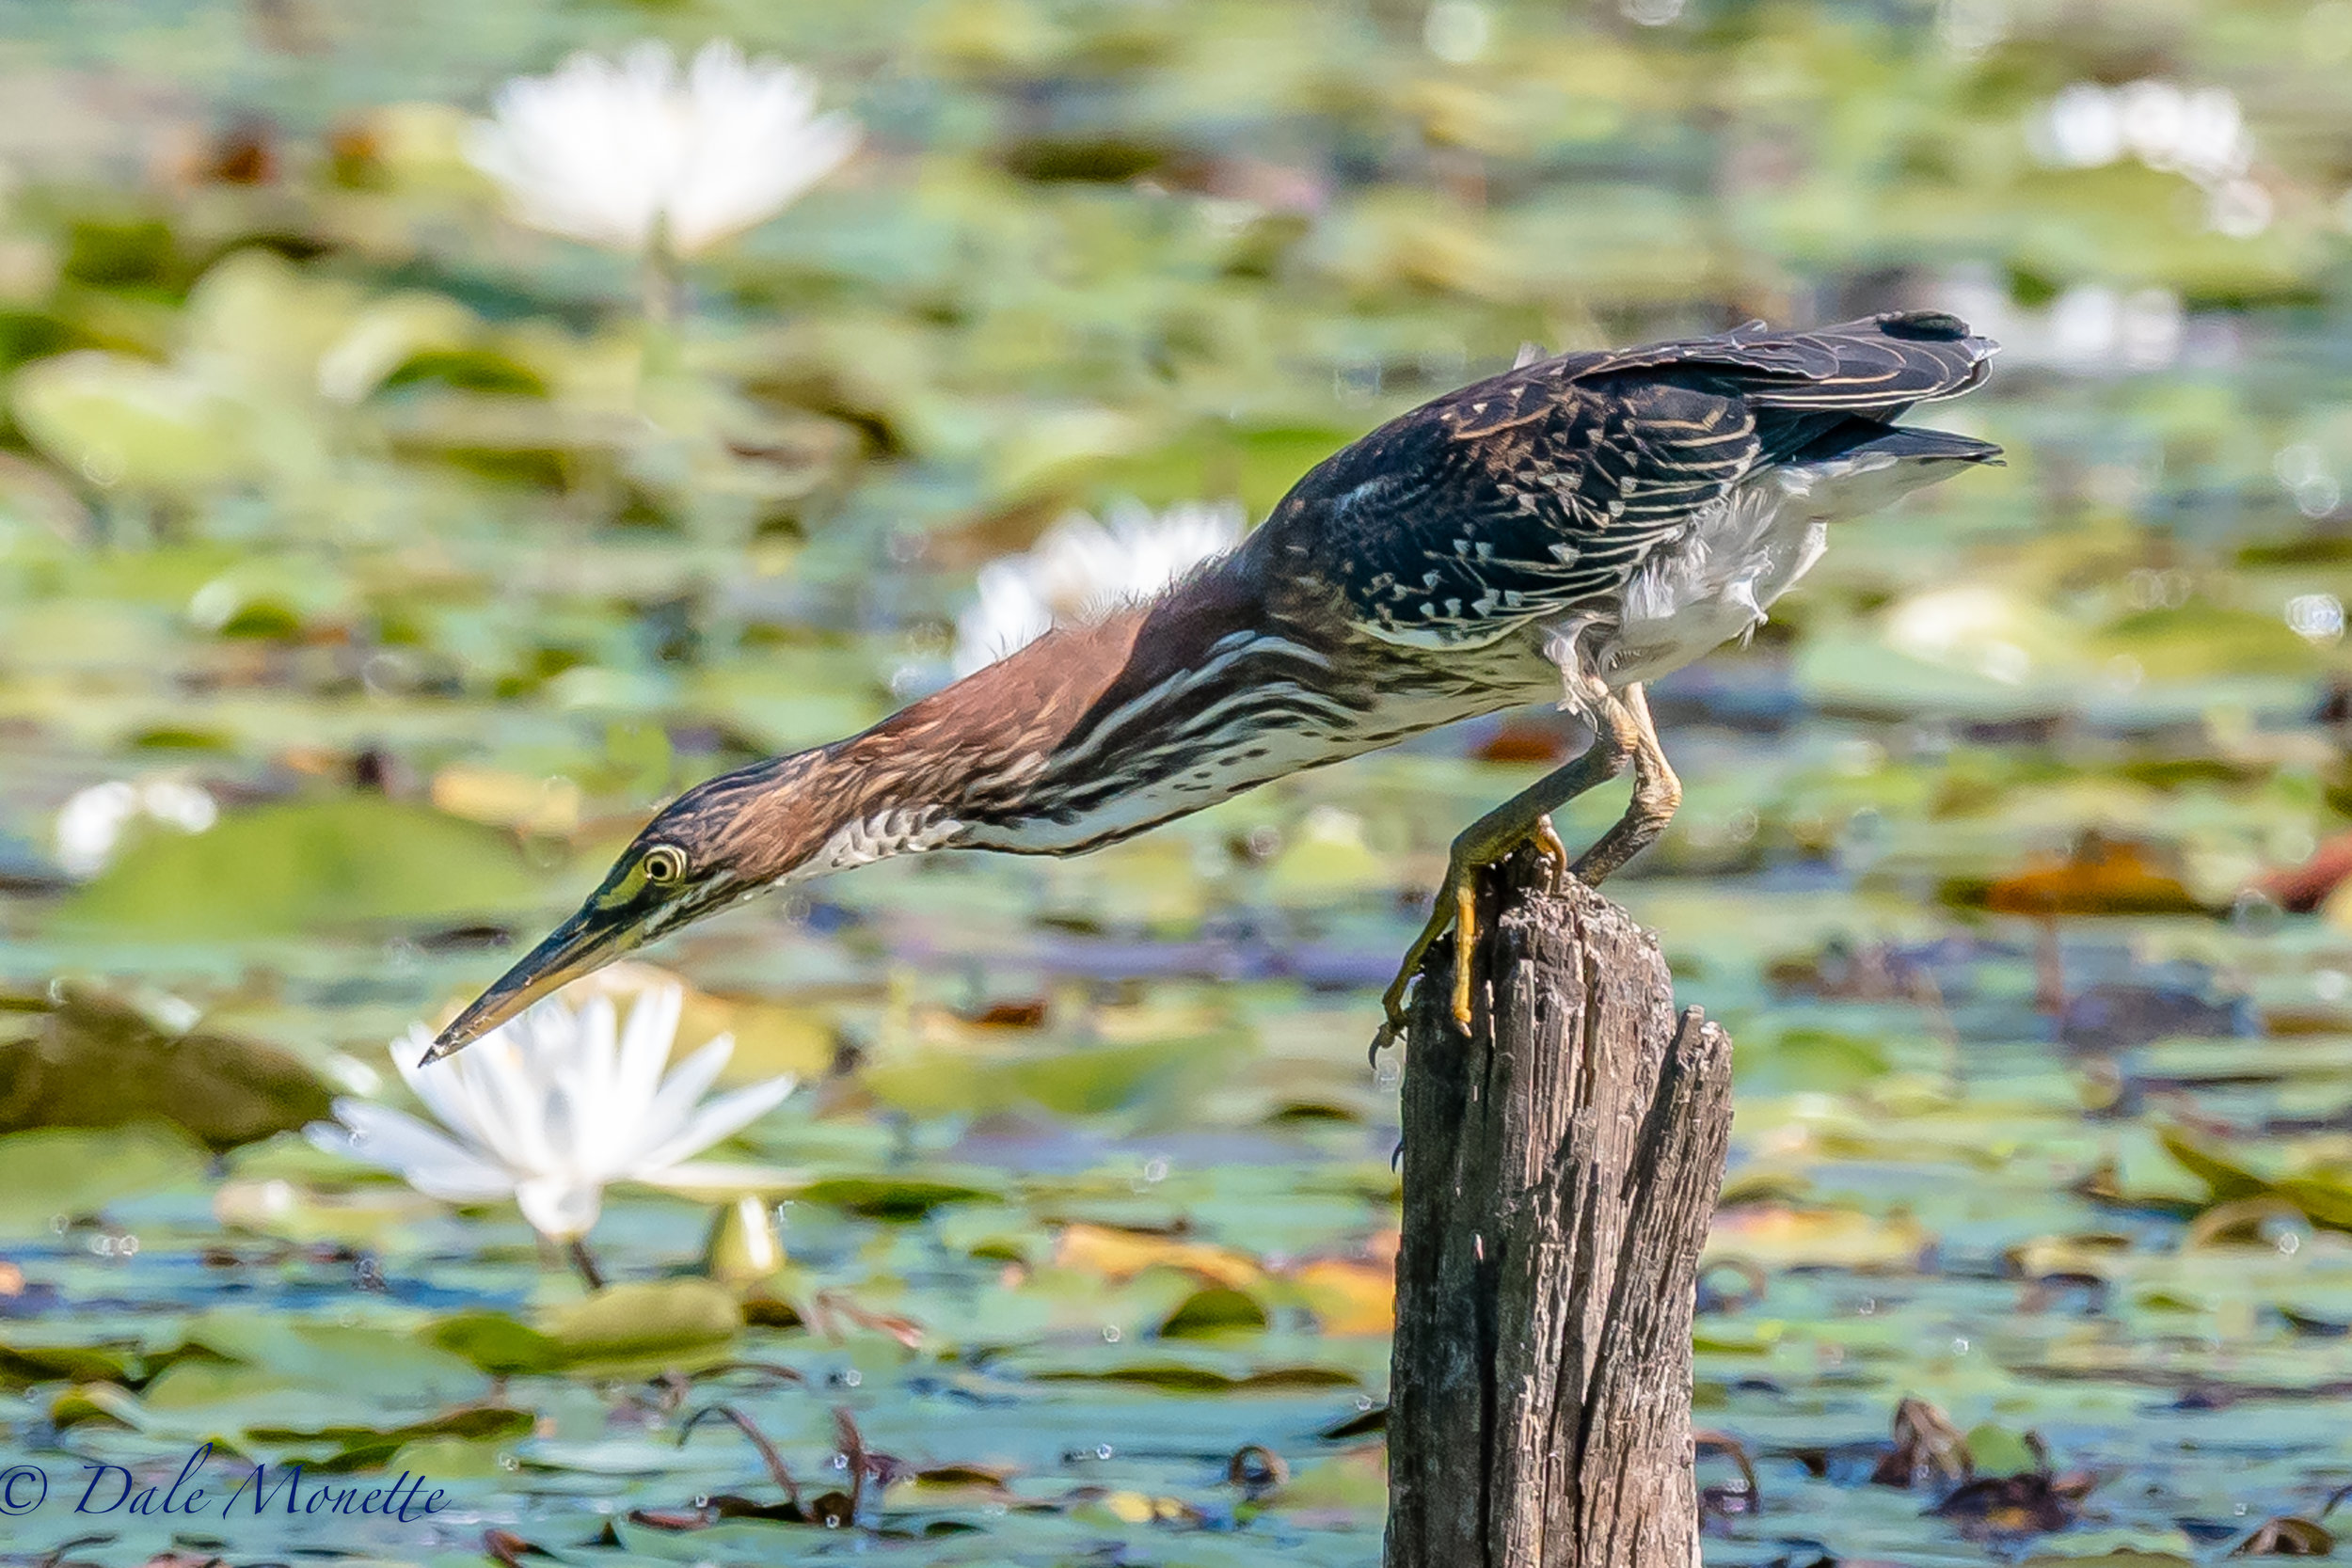 I waited 5 hours for this green heron to land on this stump and start fishing ! 8/27/15